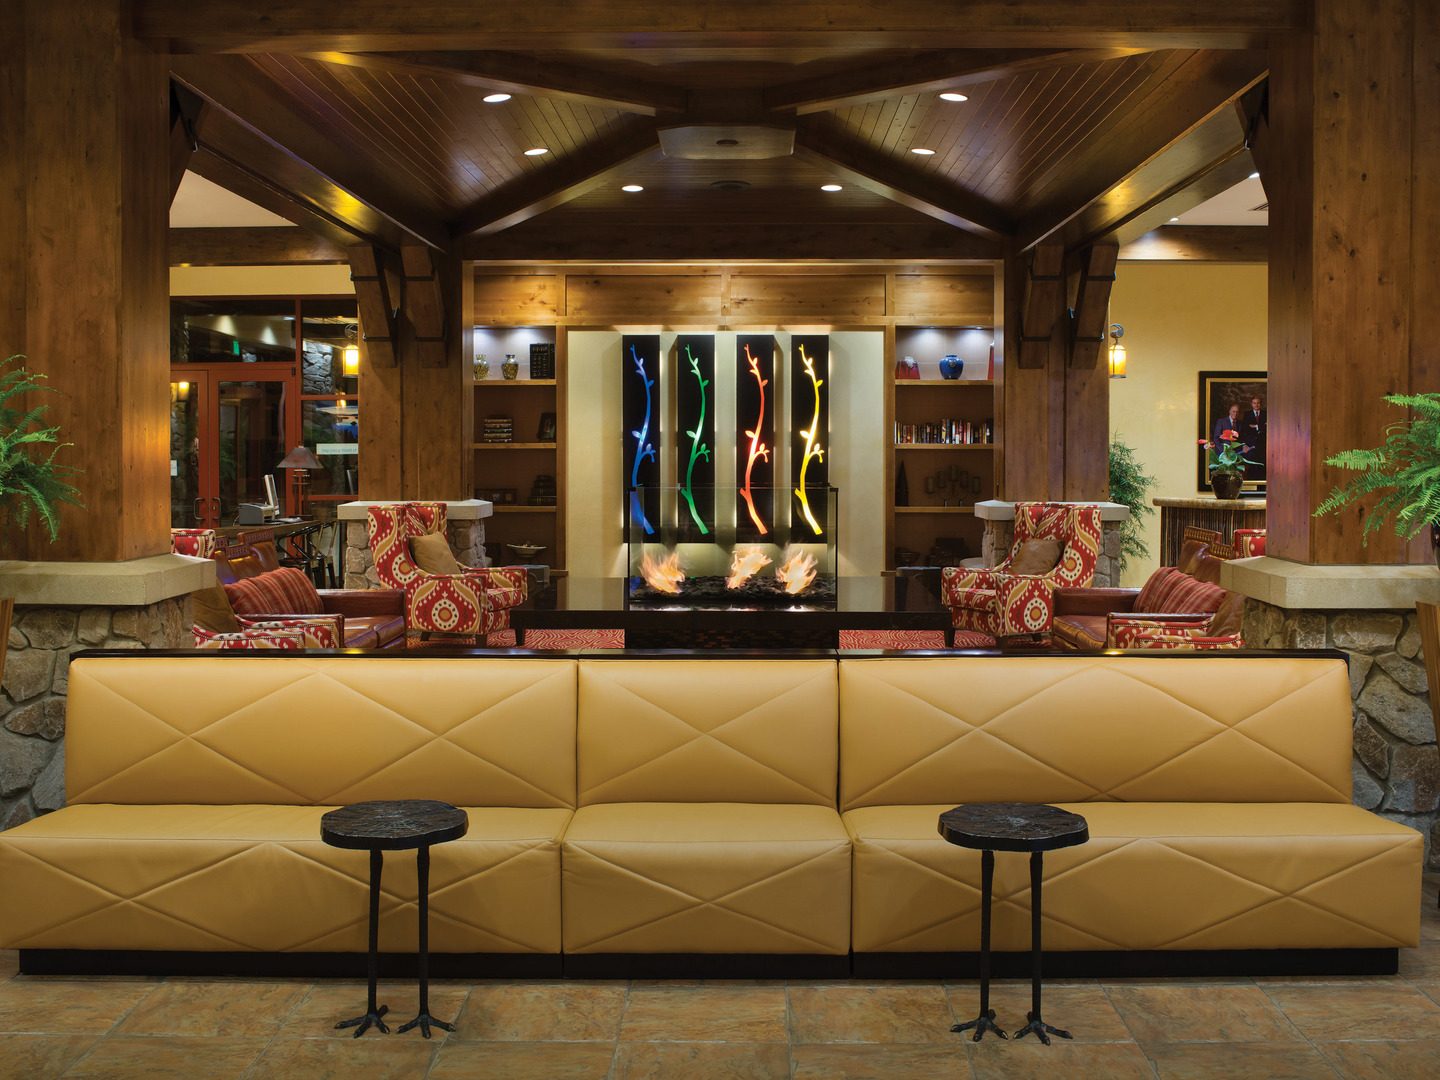 Marriott's Timber Lodge<span class='trademark'>®</span> Lobby. Marriott's Timber Lodge<span class='trademark'>®</span> is located in South Lake Tahoe, California United States.